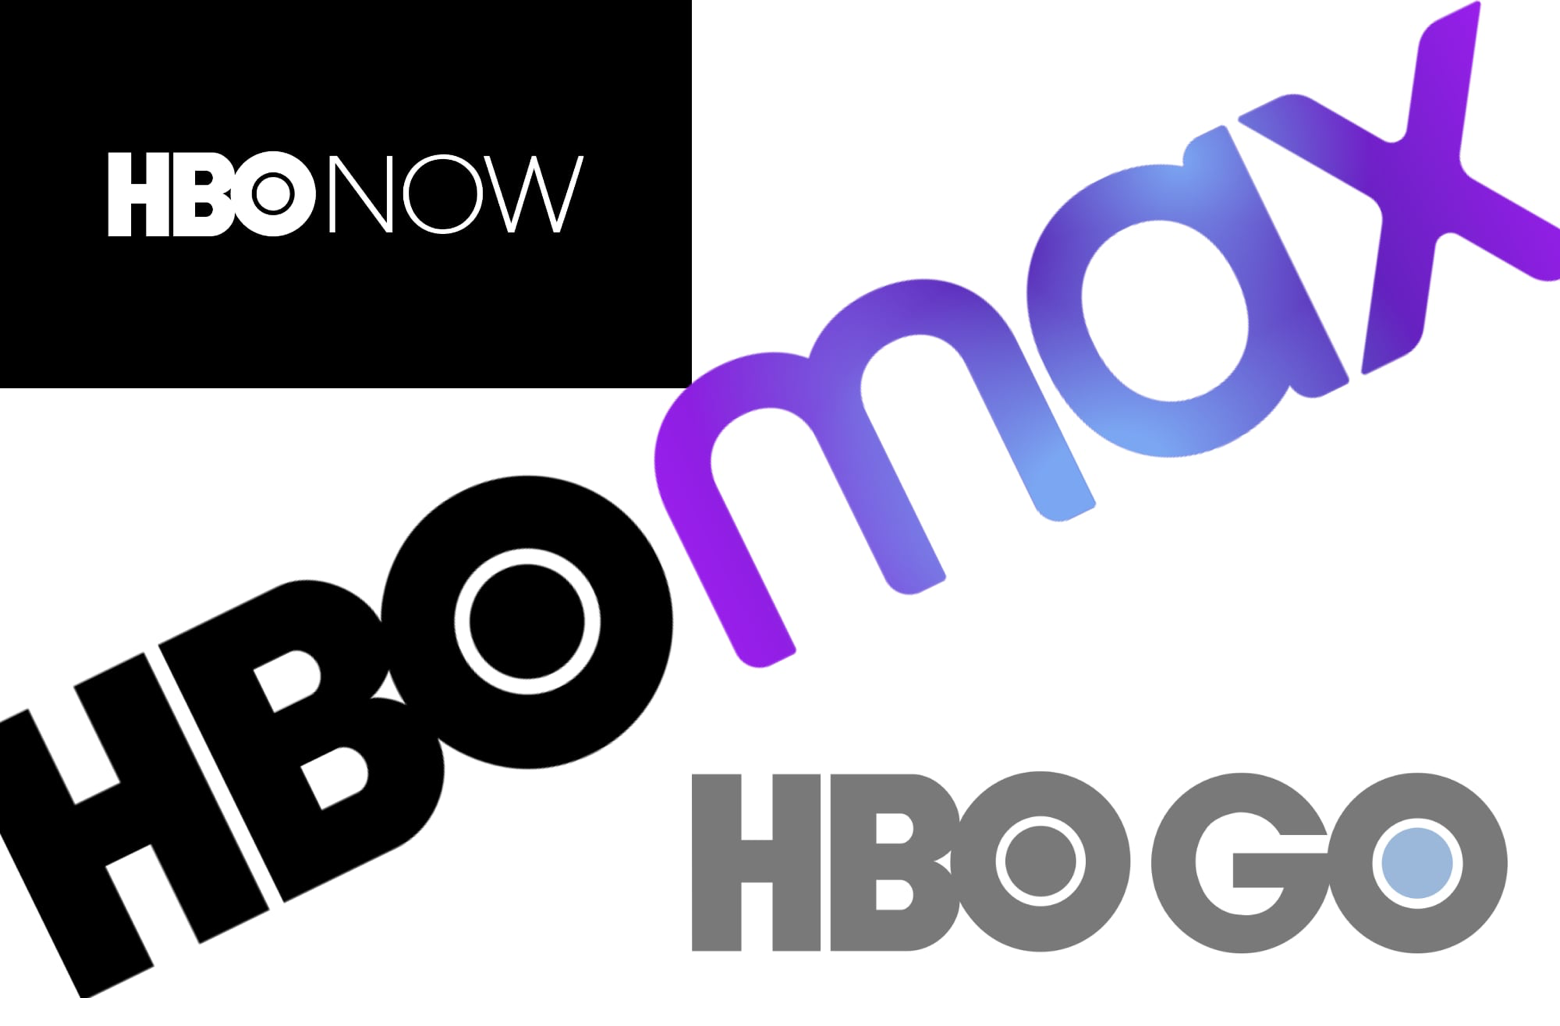 HBO Max HBO Now HBO Go